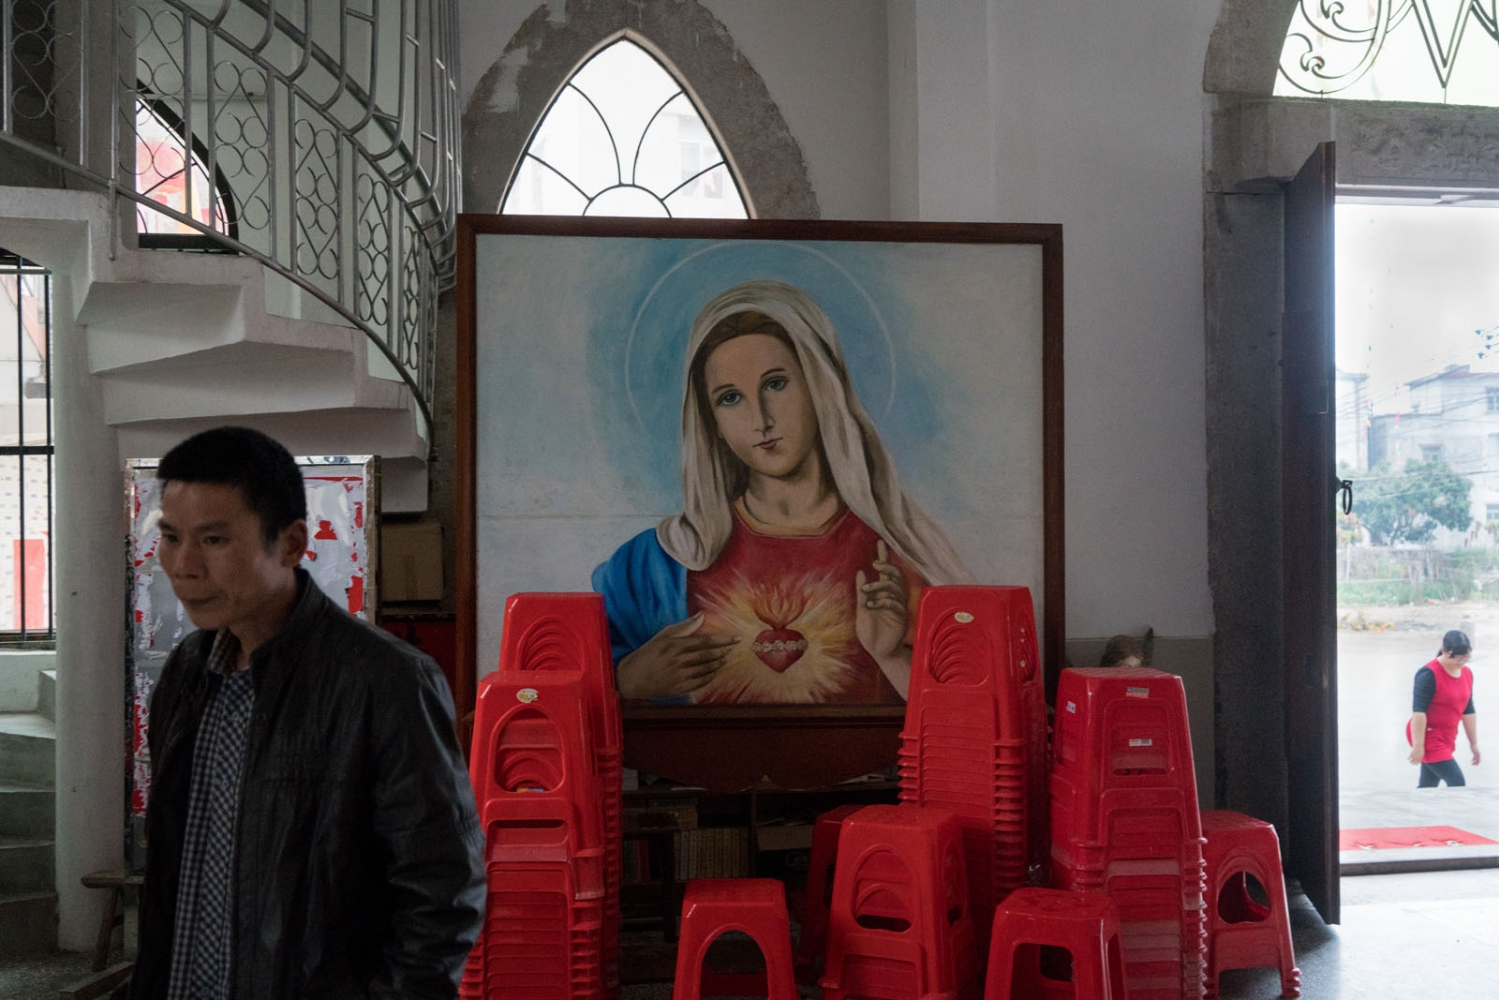 A man walks into Bobei Church before a prayer in Guangdong province, China on March 4, 2018.